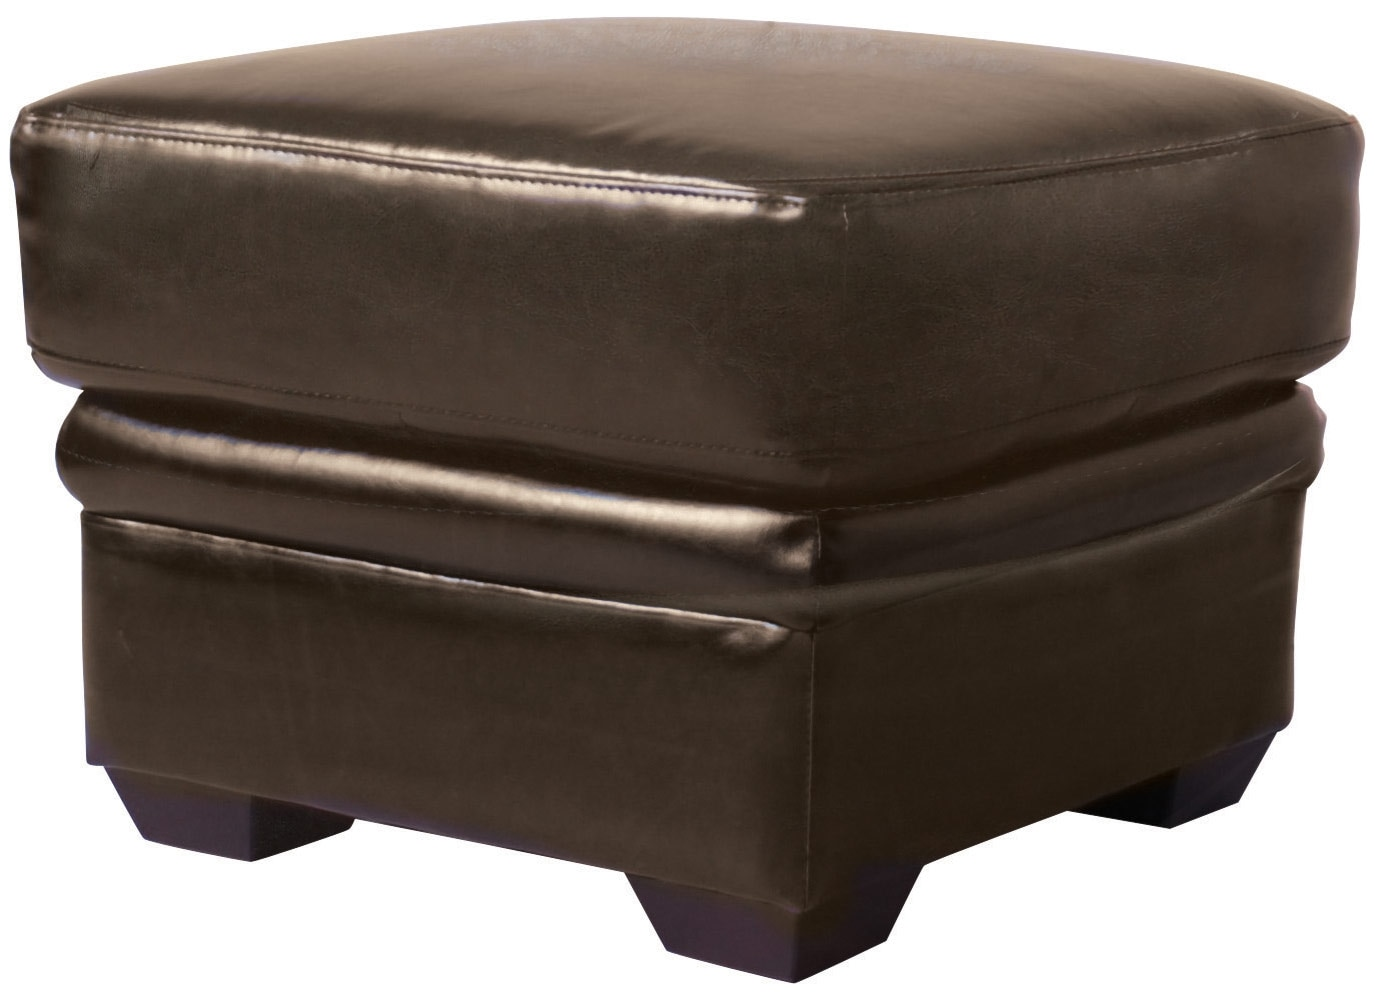 Living Room Furniture - Chase Brown Faux Leather Ottoman